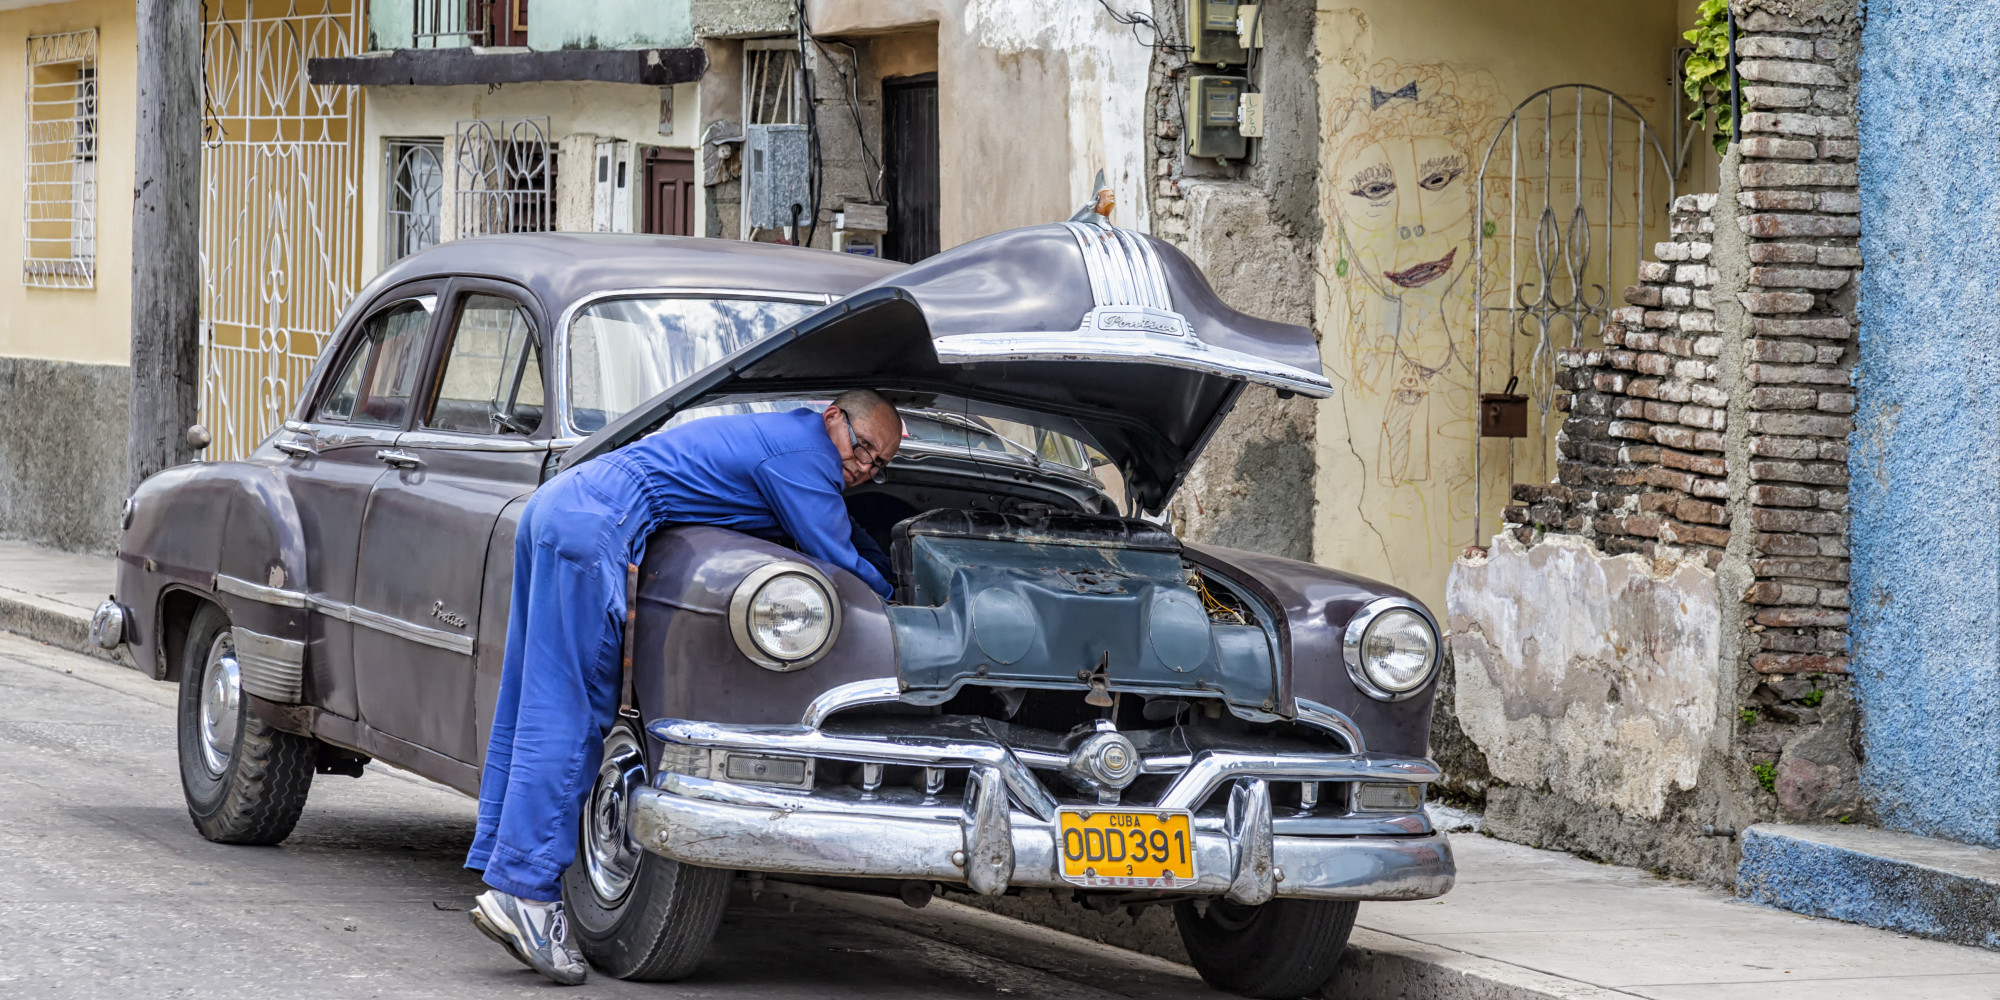 [UNVERIFIED CONTENT] Old American car being repaired by a mechanic on the side of the road in Holguin, Cuba.